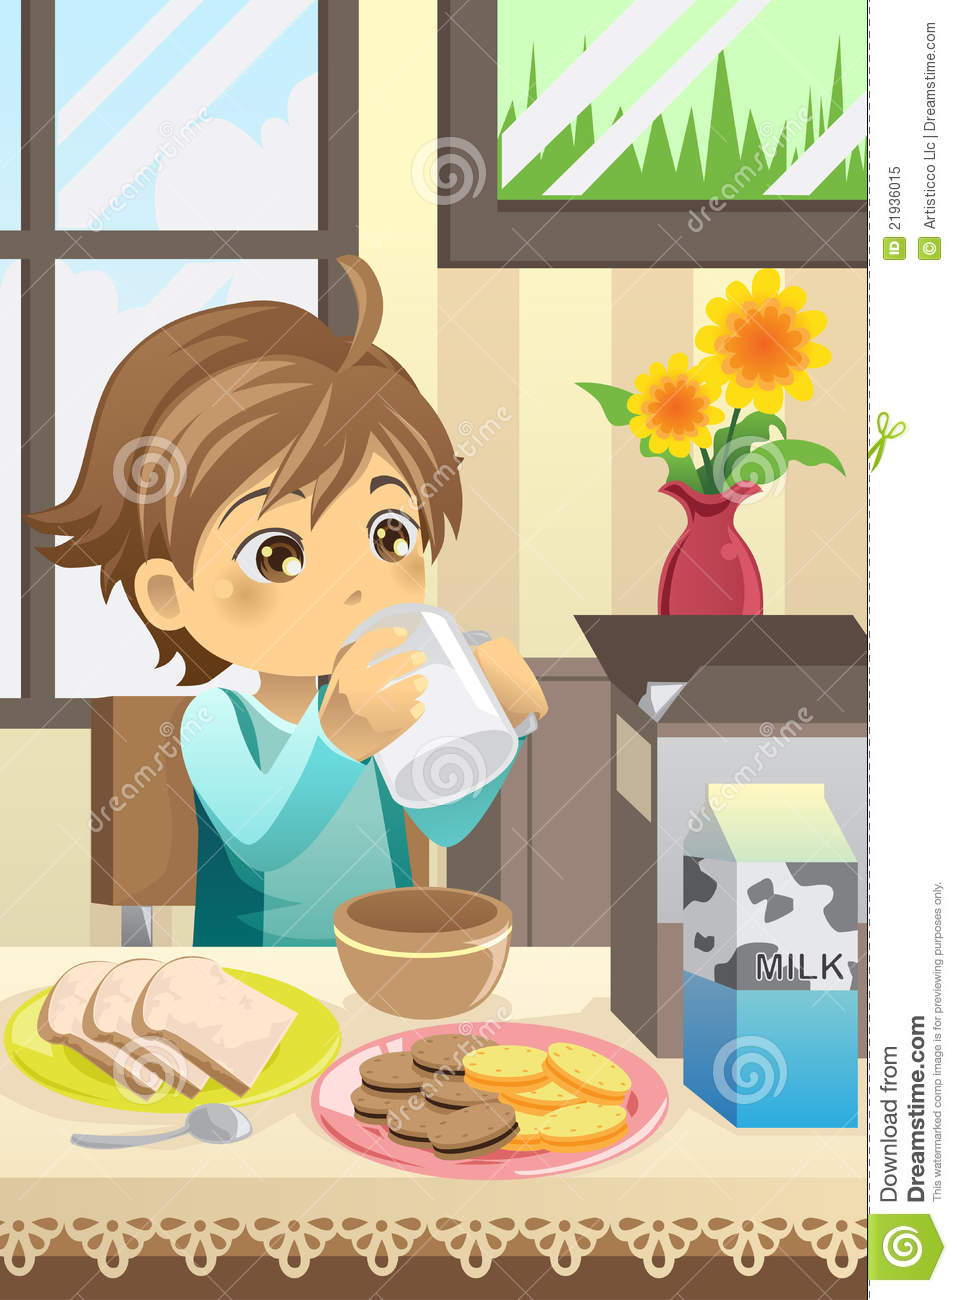 Boy Eating Breakfast Royalty Free Stock Photo  Image